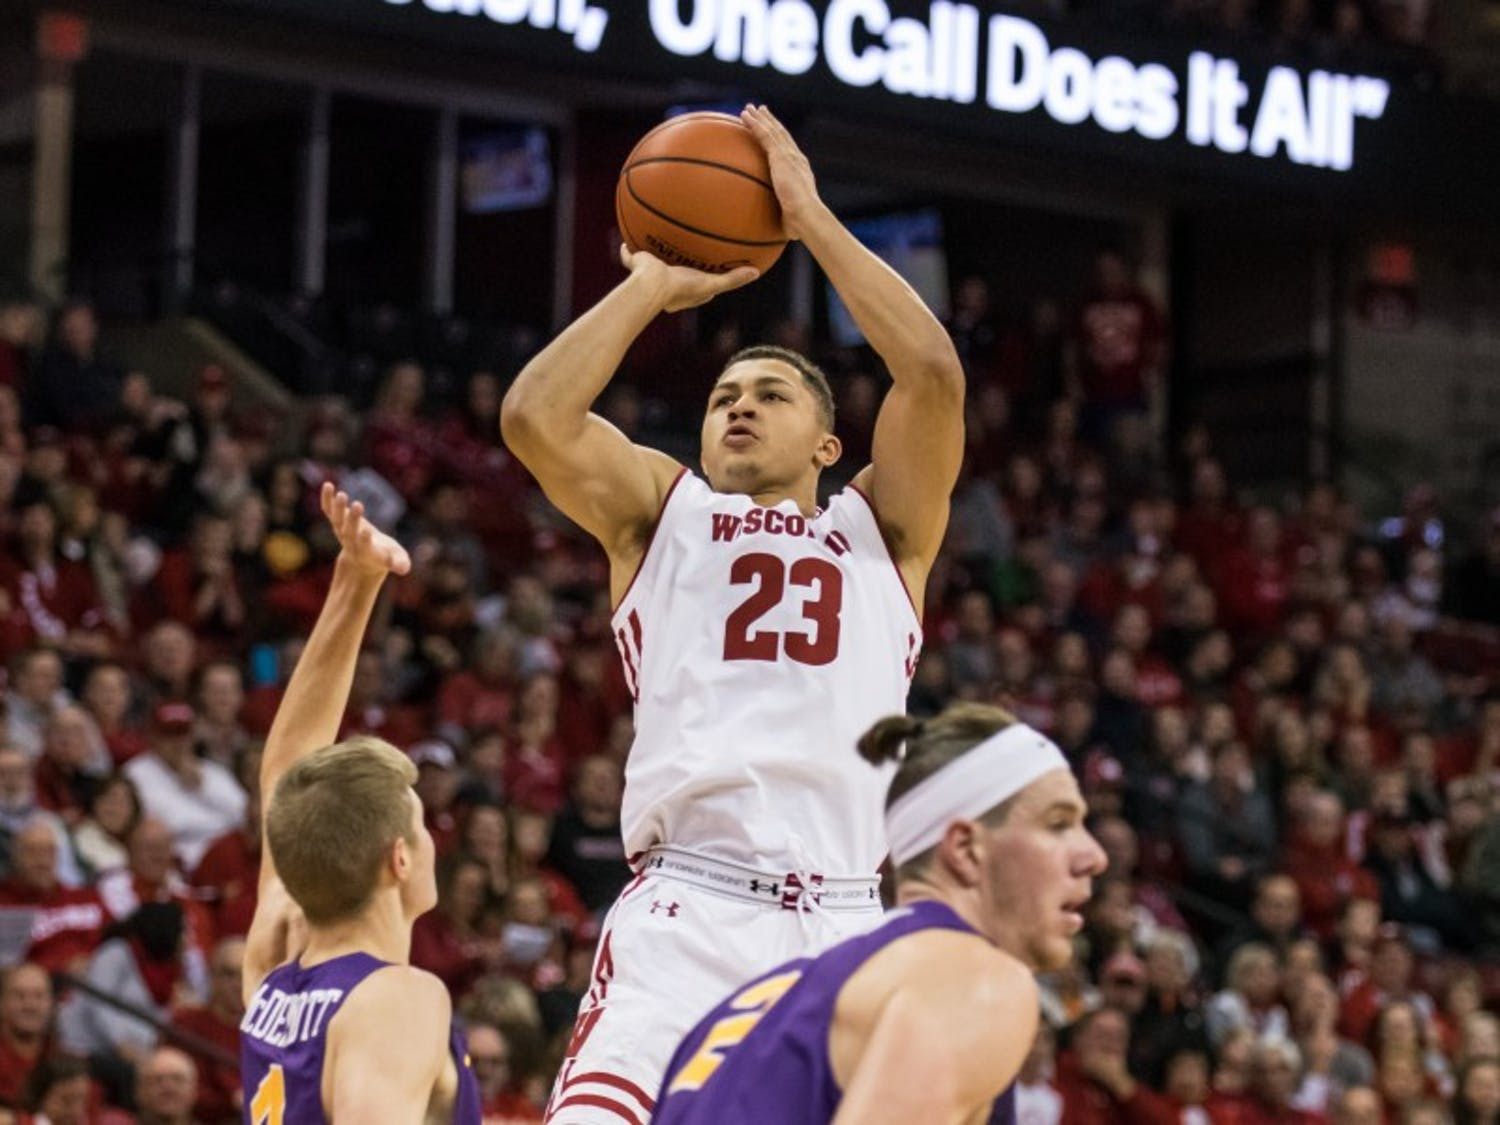 Sophomore guard Kobe King was one of several Wisconsin playersheavily recruited by Marquette coming out of high school, but stayed committed to the Badgers.